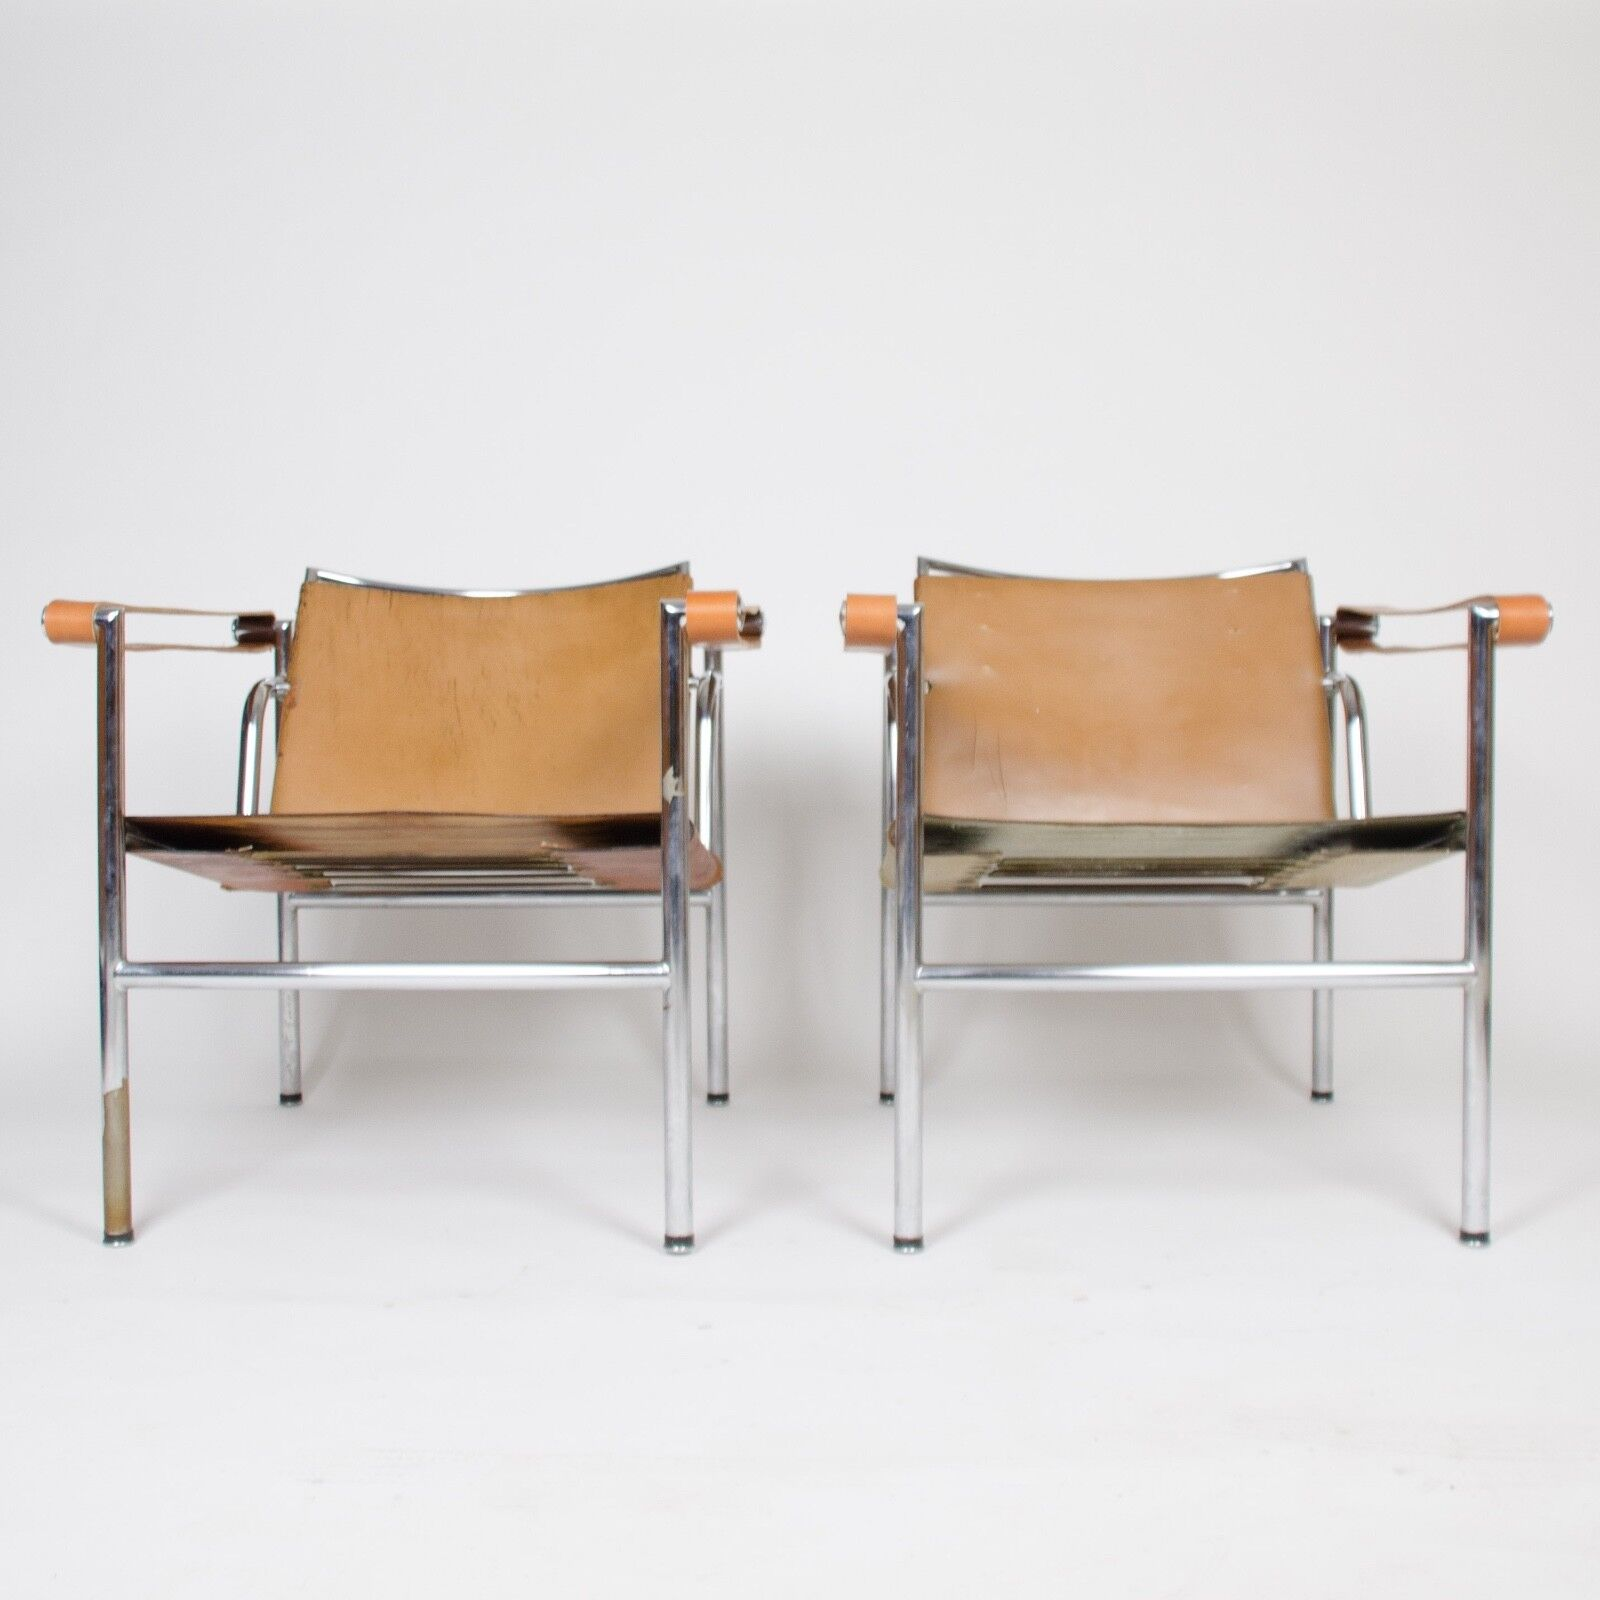 Lc1 Sessel Details Zu 1950 S Authentic Le Corbusier Marked Stendig Lc1 Basculant Chairs Thonet Cassina